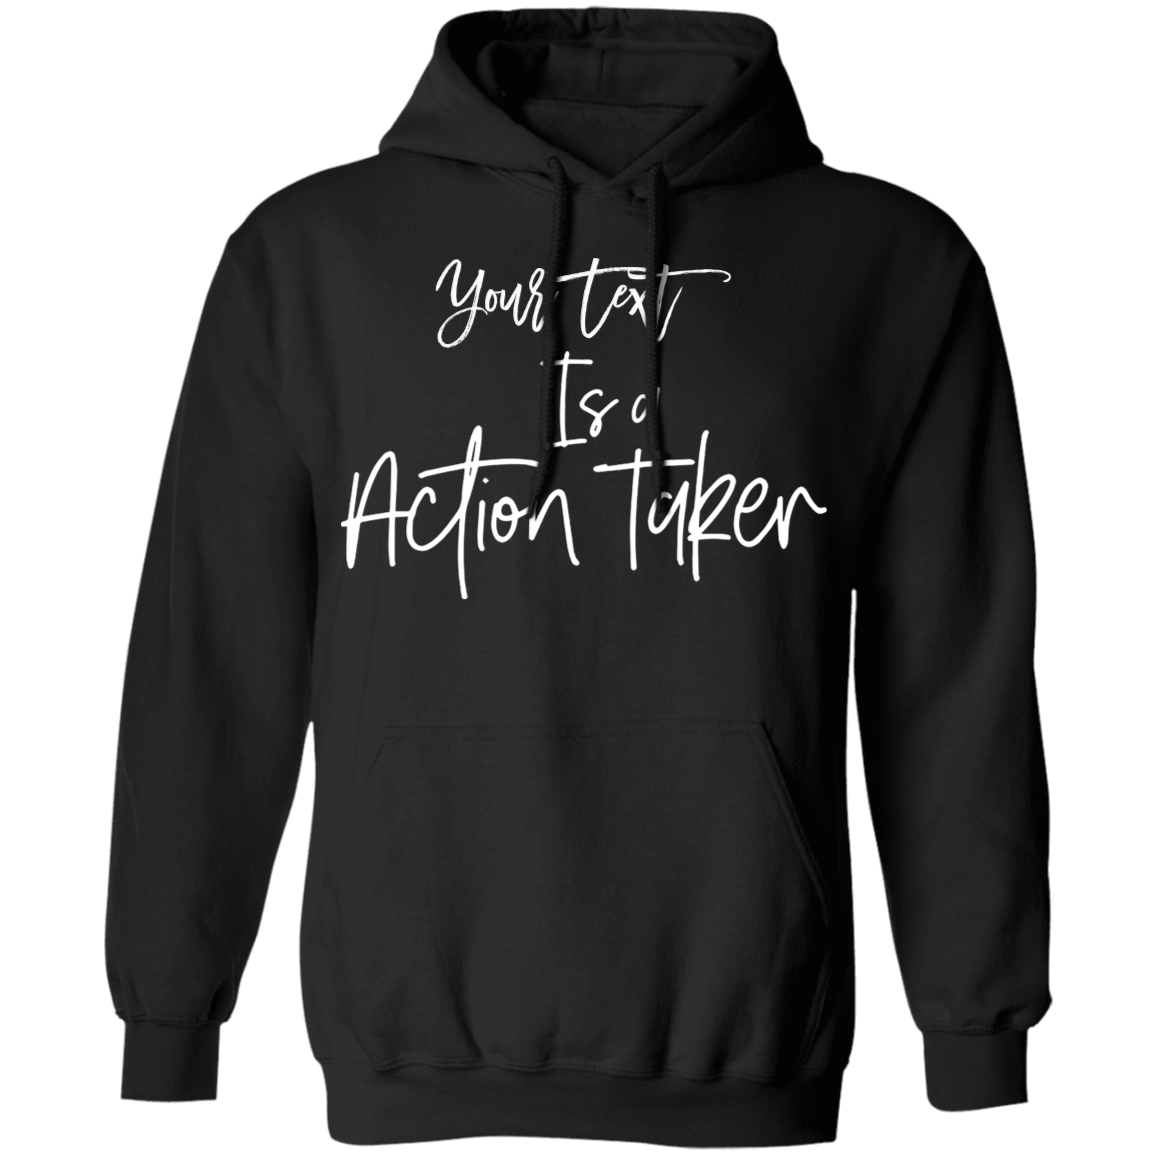 Action Taker Hoodie